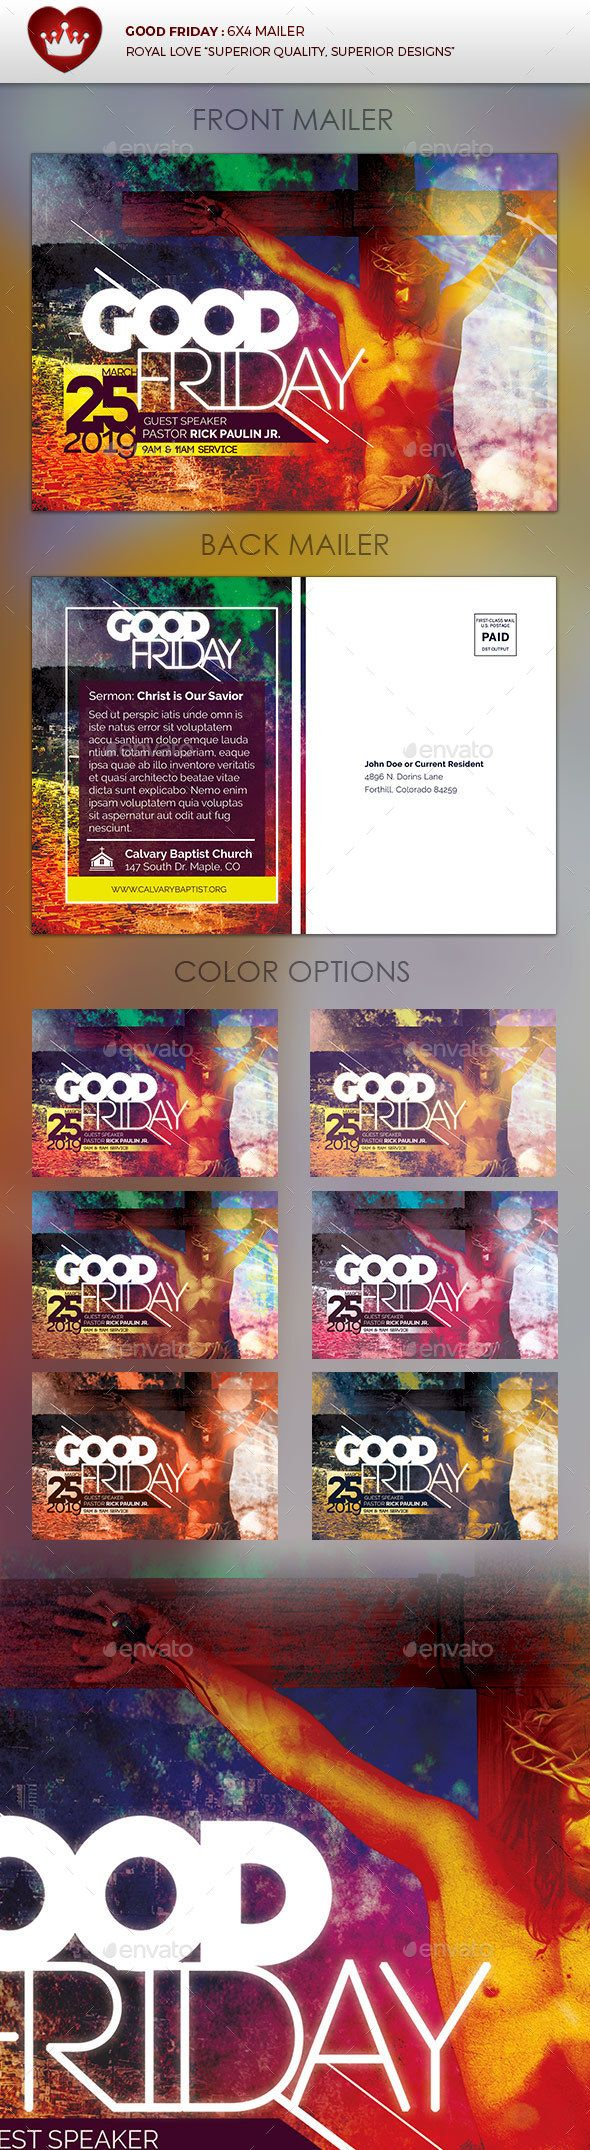 Good Friday Church Mailer — Photoshop PSD #conference #easter • Available here → https://graphicriver.net/item/good-friday-church-mailer/15357354?ref=pxcr